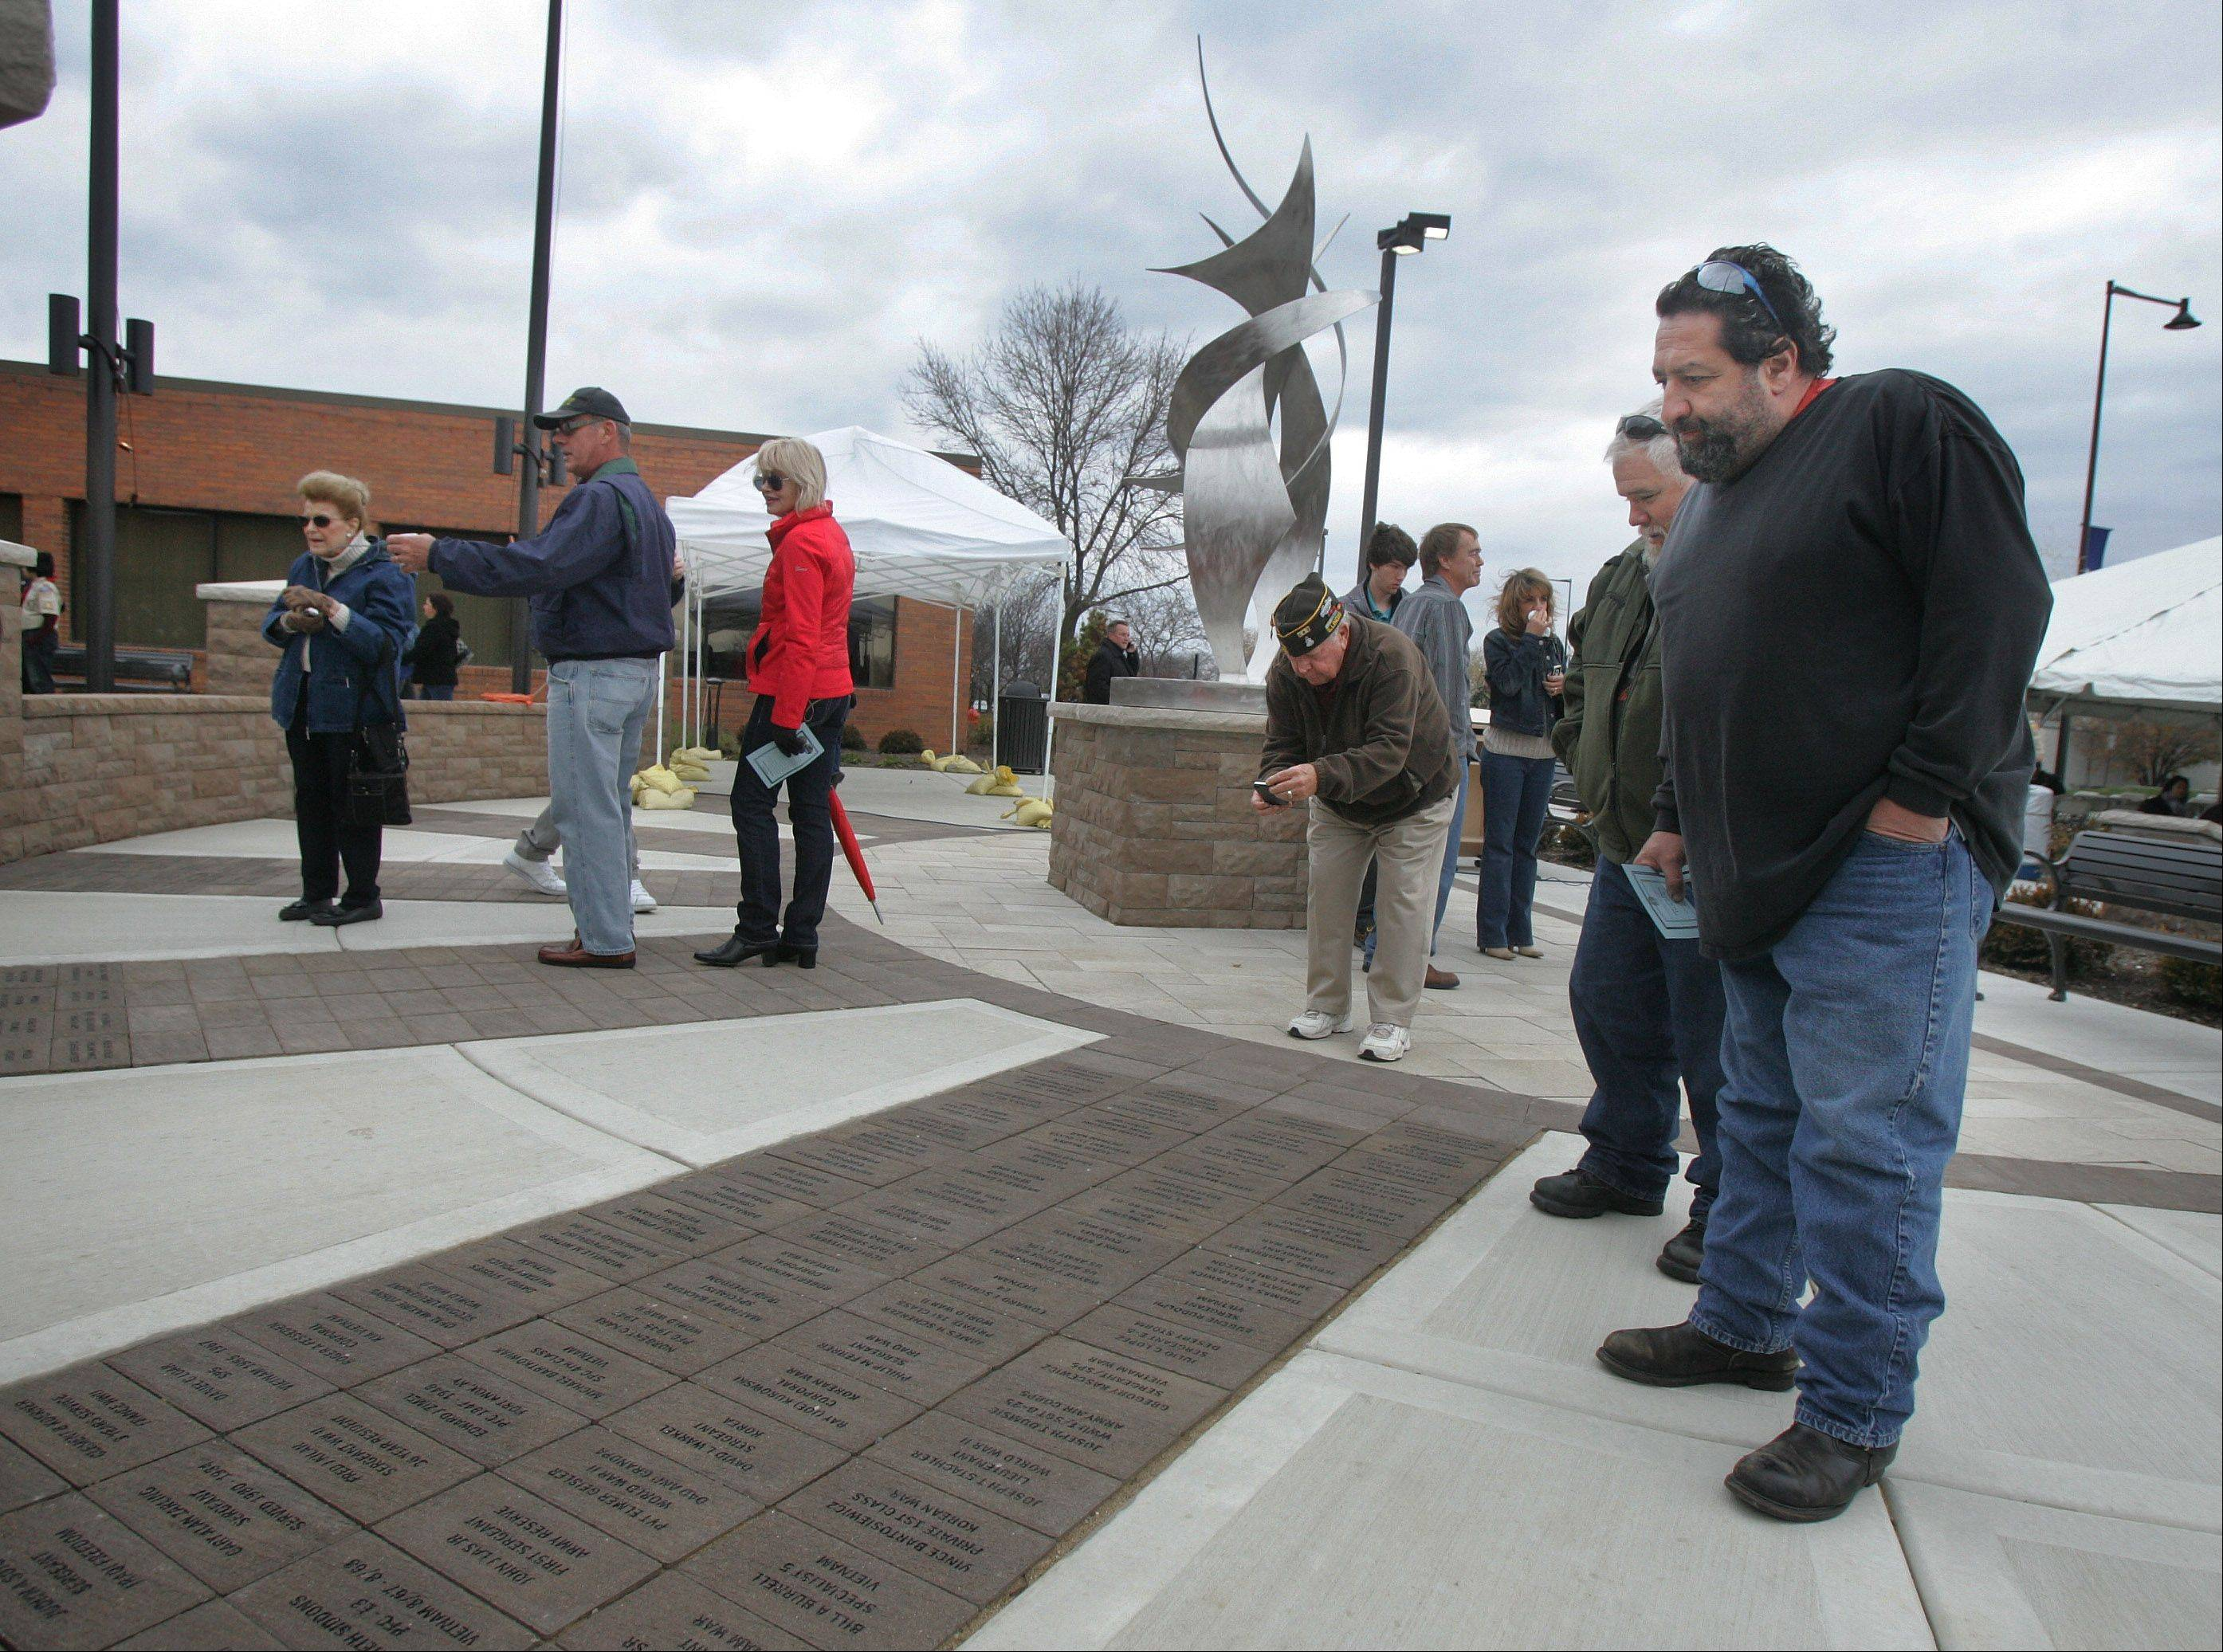 Frank Zepeda, of Hanover Park, right, looks for the name of his great uncle William Bufalini before the Veterans Day ceremony Sunday at the Hanover Park Village Hall featuring the unveiling of Veterans Memorial Plaza. Bufalini was a World War II veteran who was at Pearl Harbor when it was attacked by Japan.